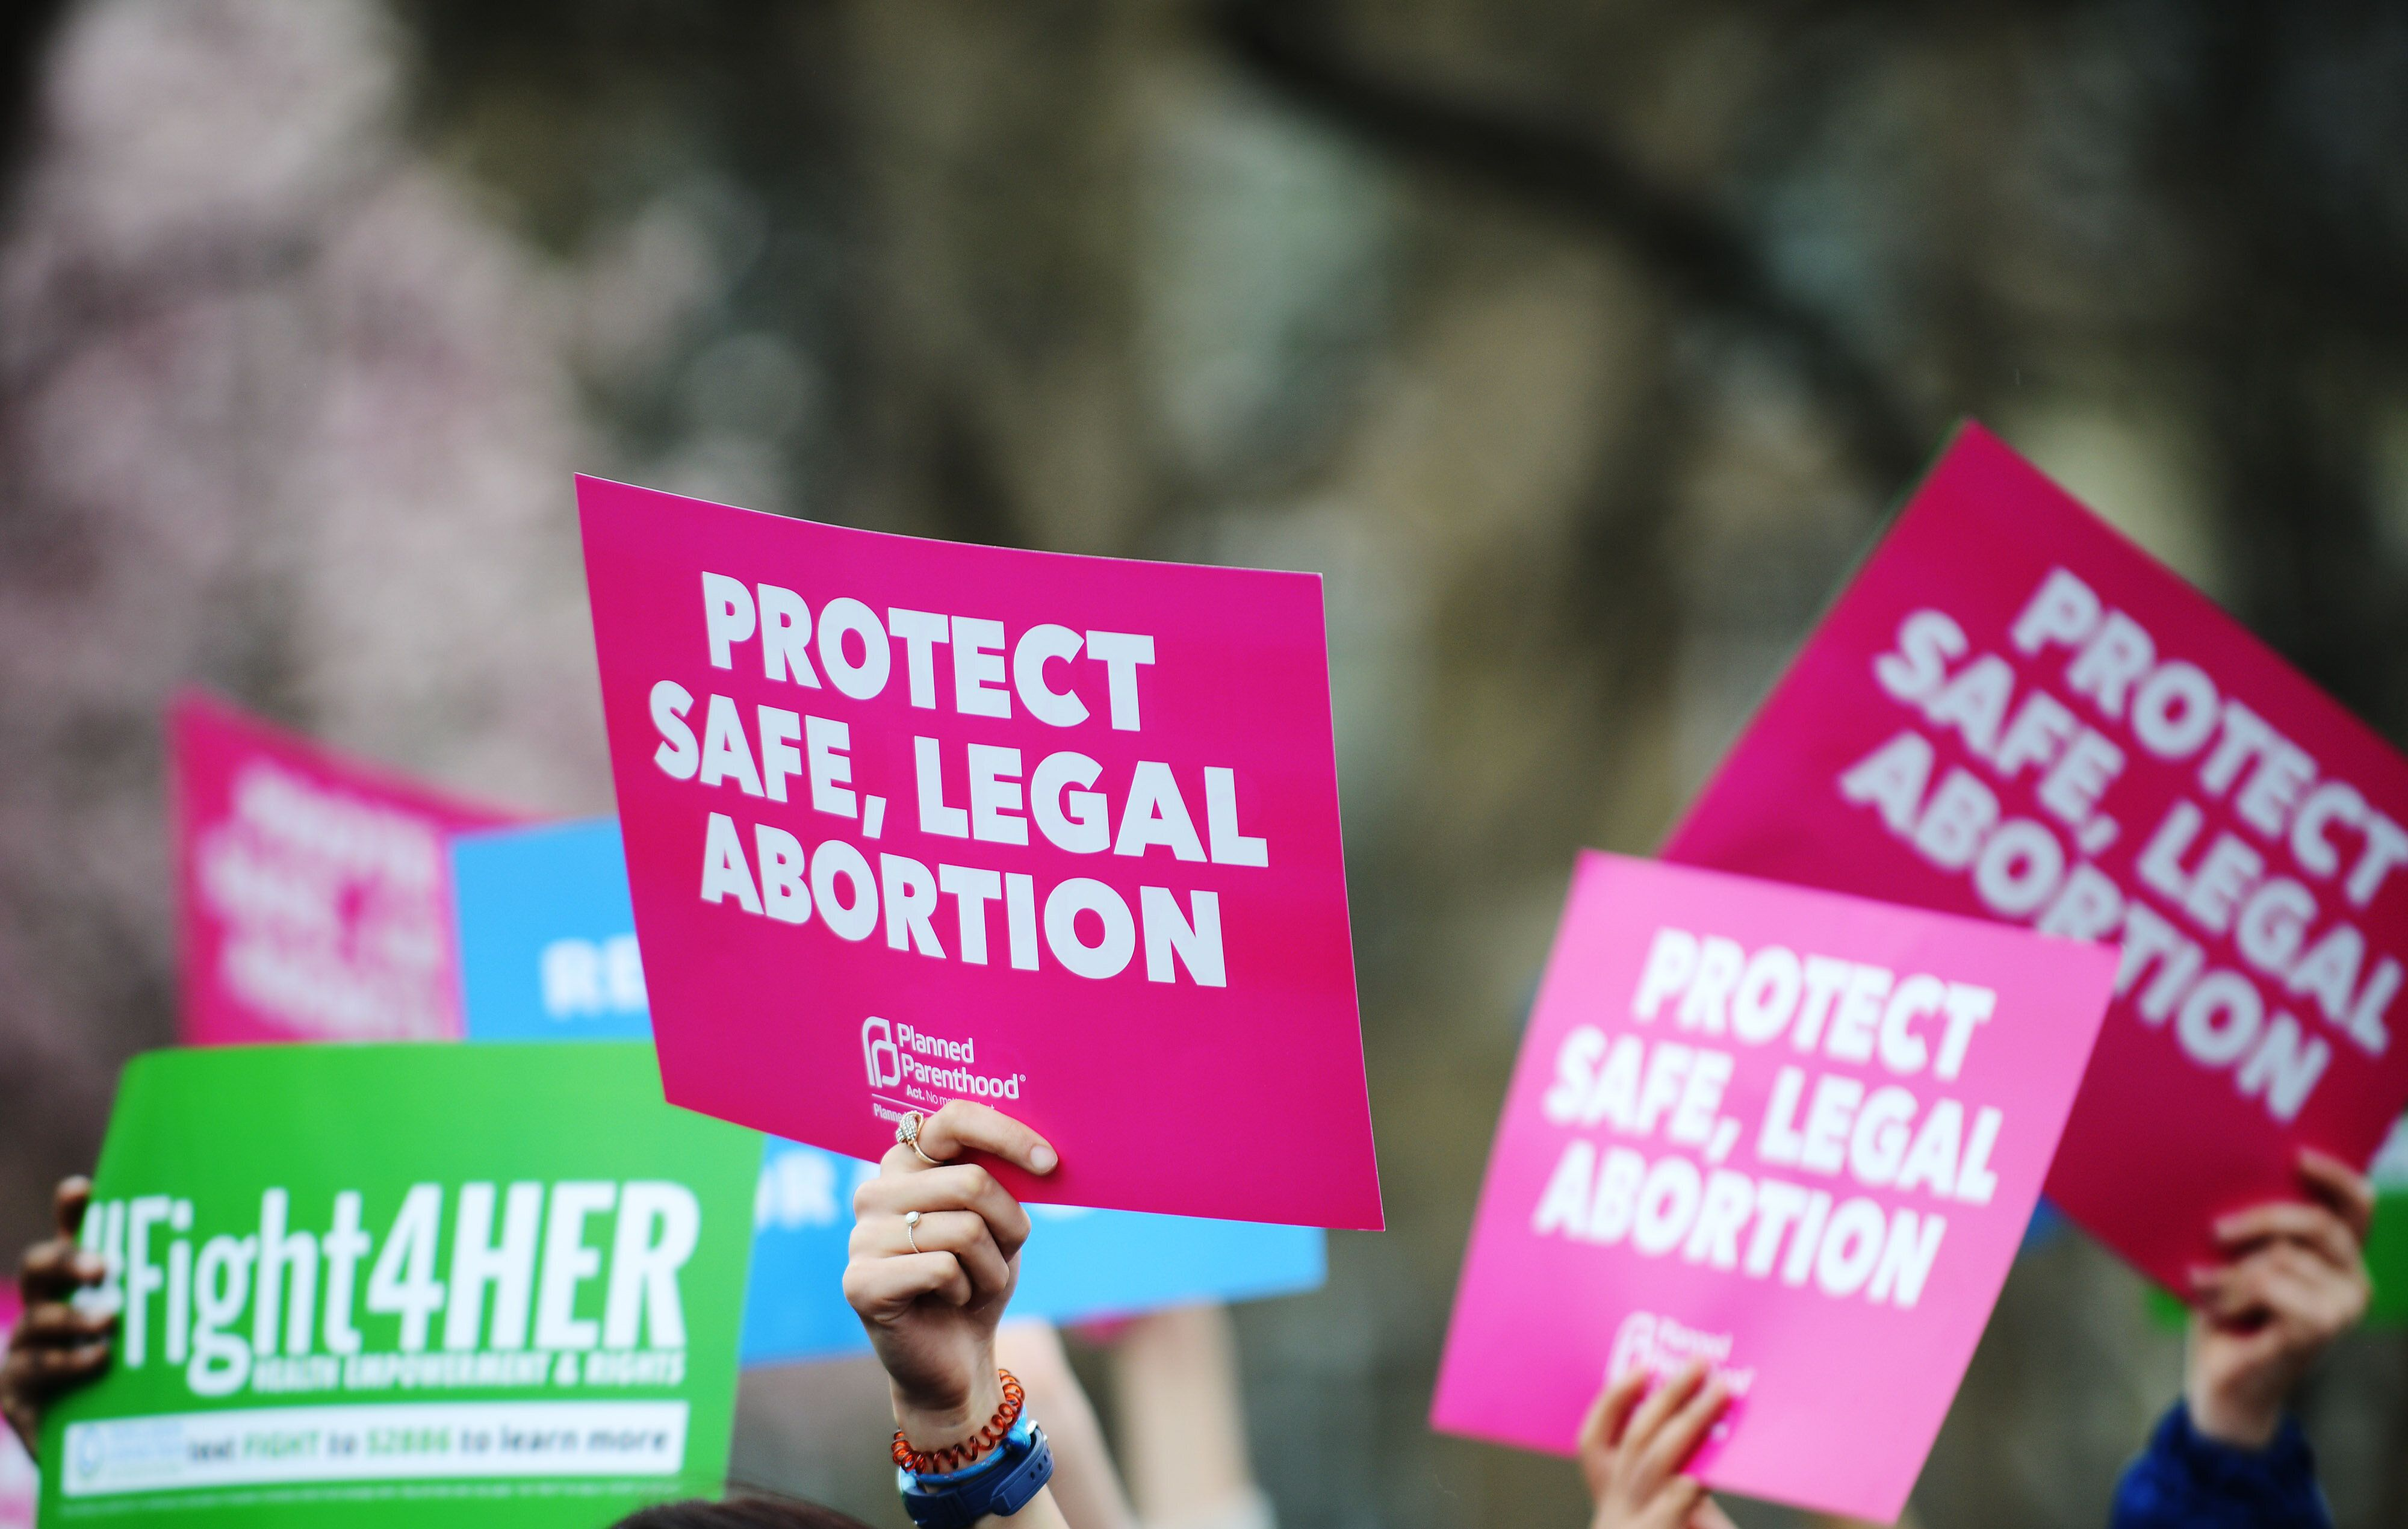 """WASHINGTON, DC - MARCH 29: People attend a """"Fight4Her"""" pro-choice rally in front of the White House at Lafayette Square on March 29, 2019 in Washington, DC. A coalition of NARAL Pro-Choice America, Planned Parenthood and Population Connection Action Fund gathered to demand the end of the 'Global Gag Rule'.  (Photo by Astrid Riecken/Getty Images)"""